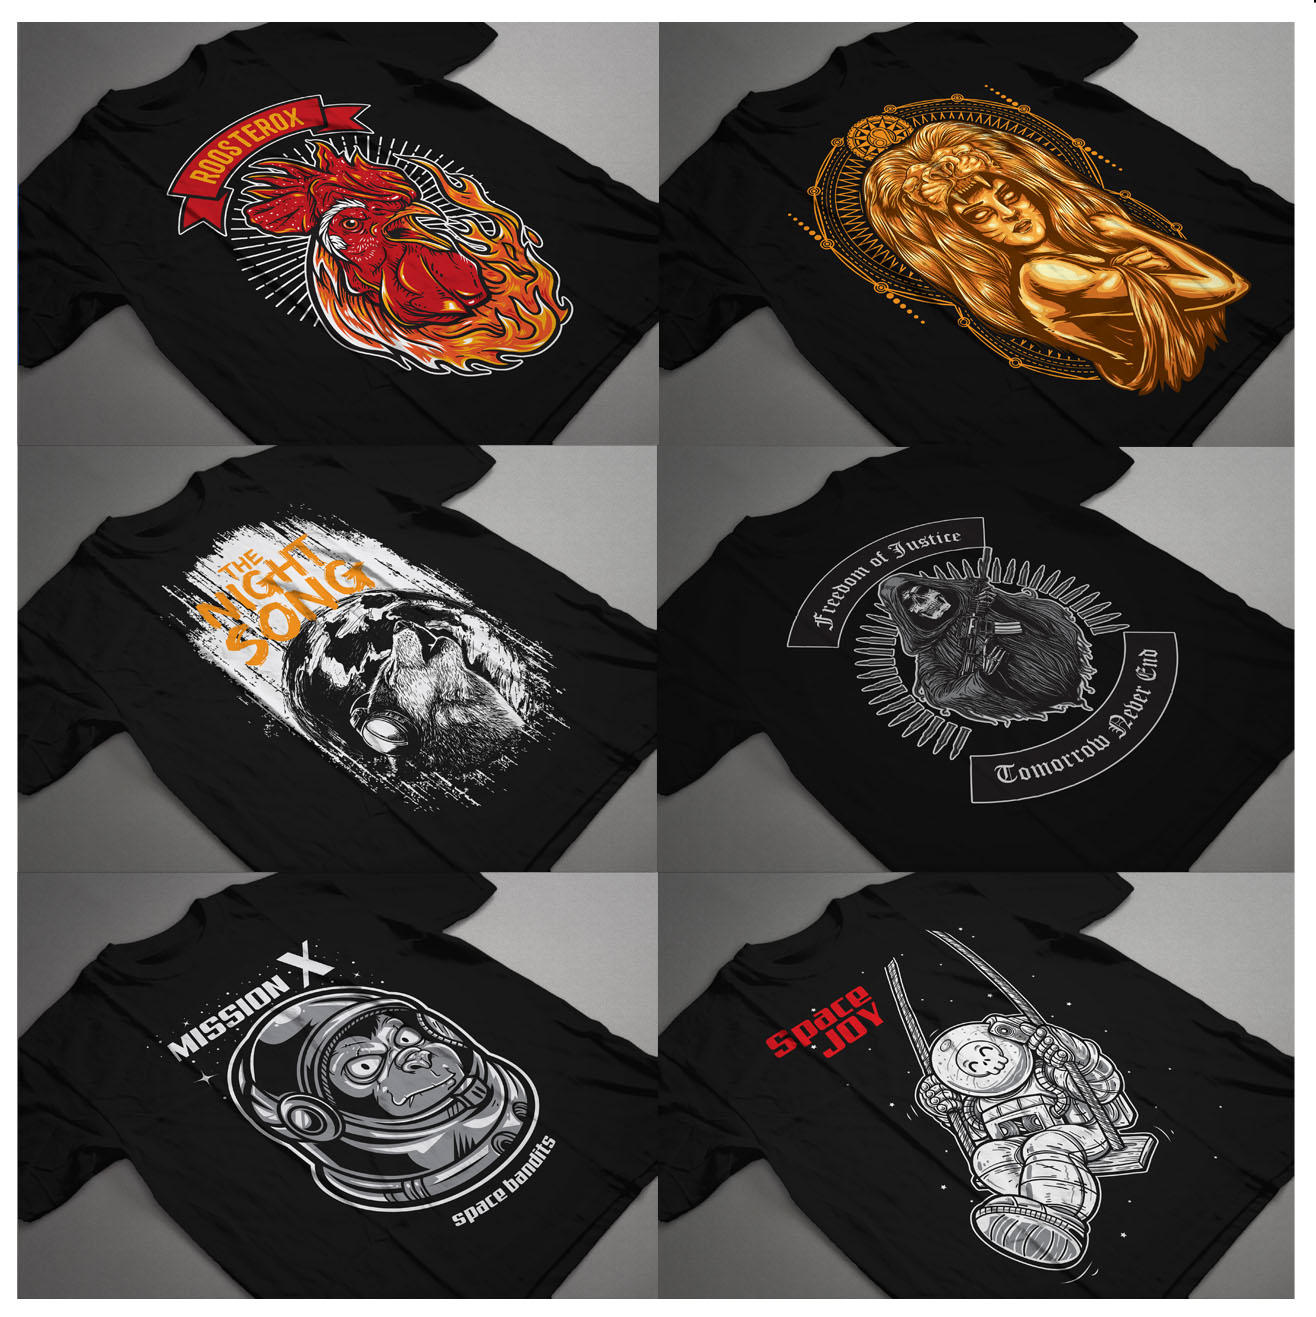 Bold Graphic T-shirt & Apparel Design  by r4pro - 103653